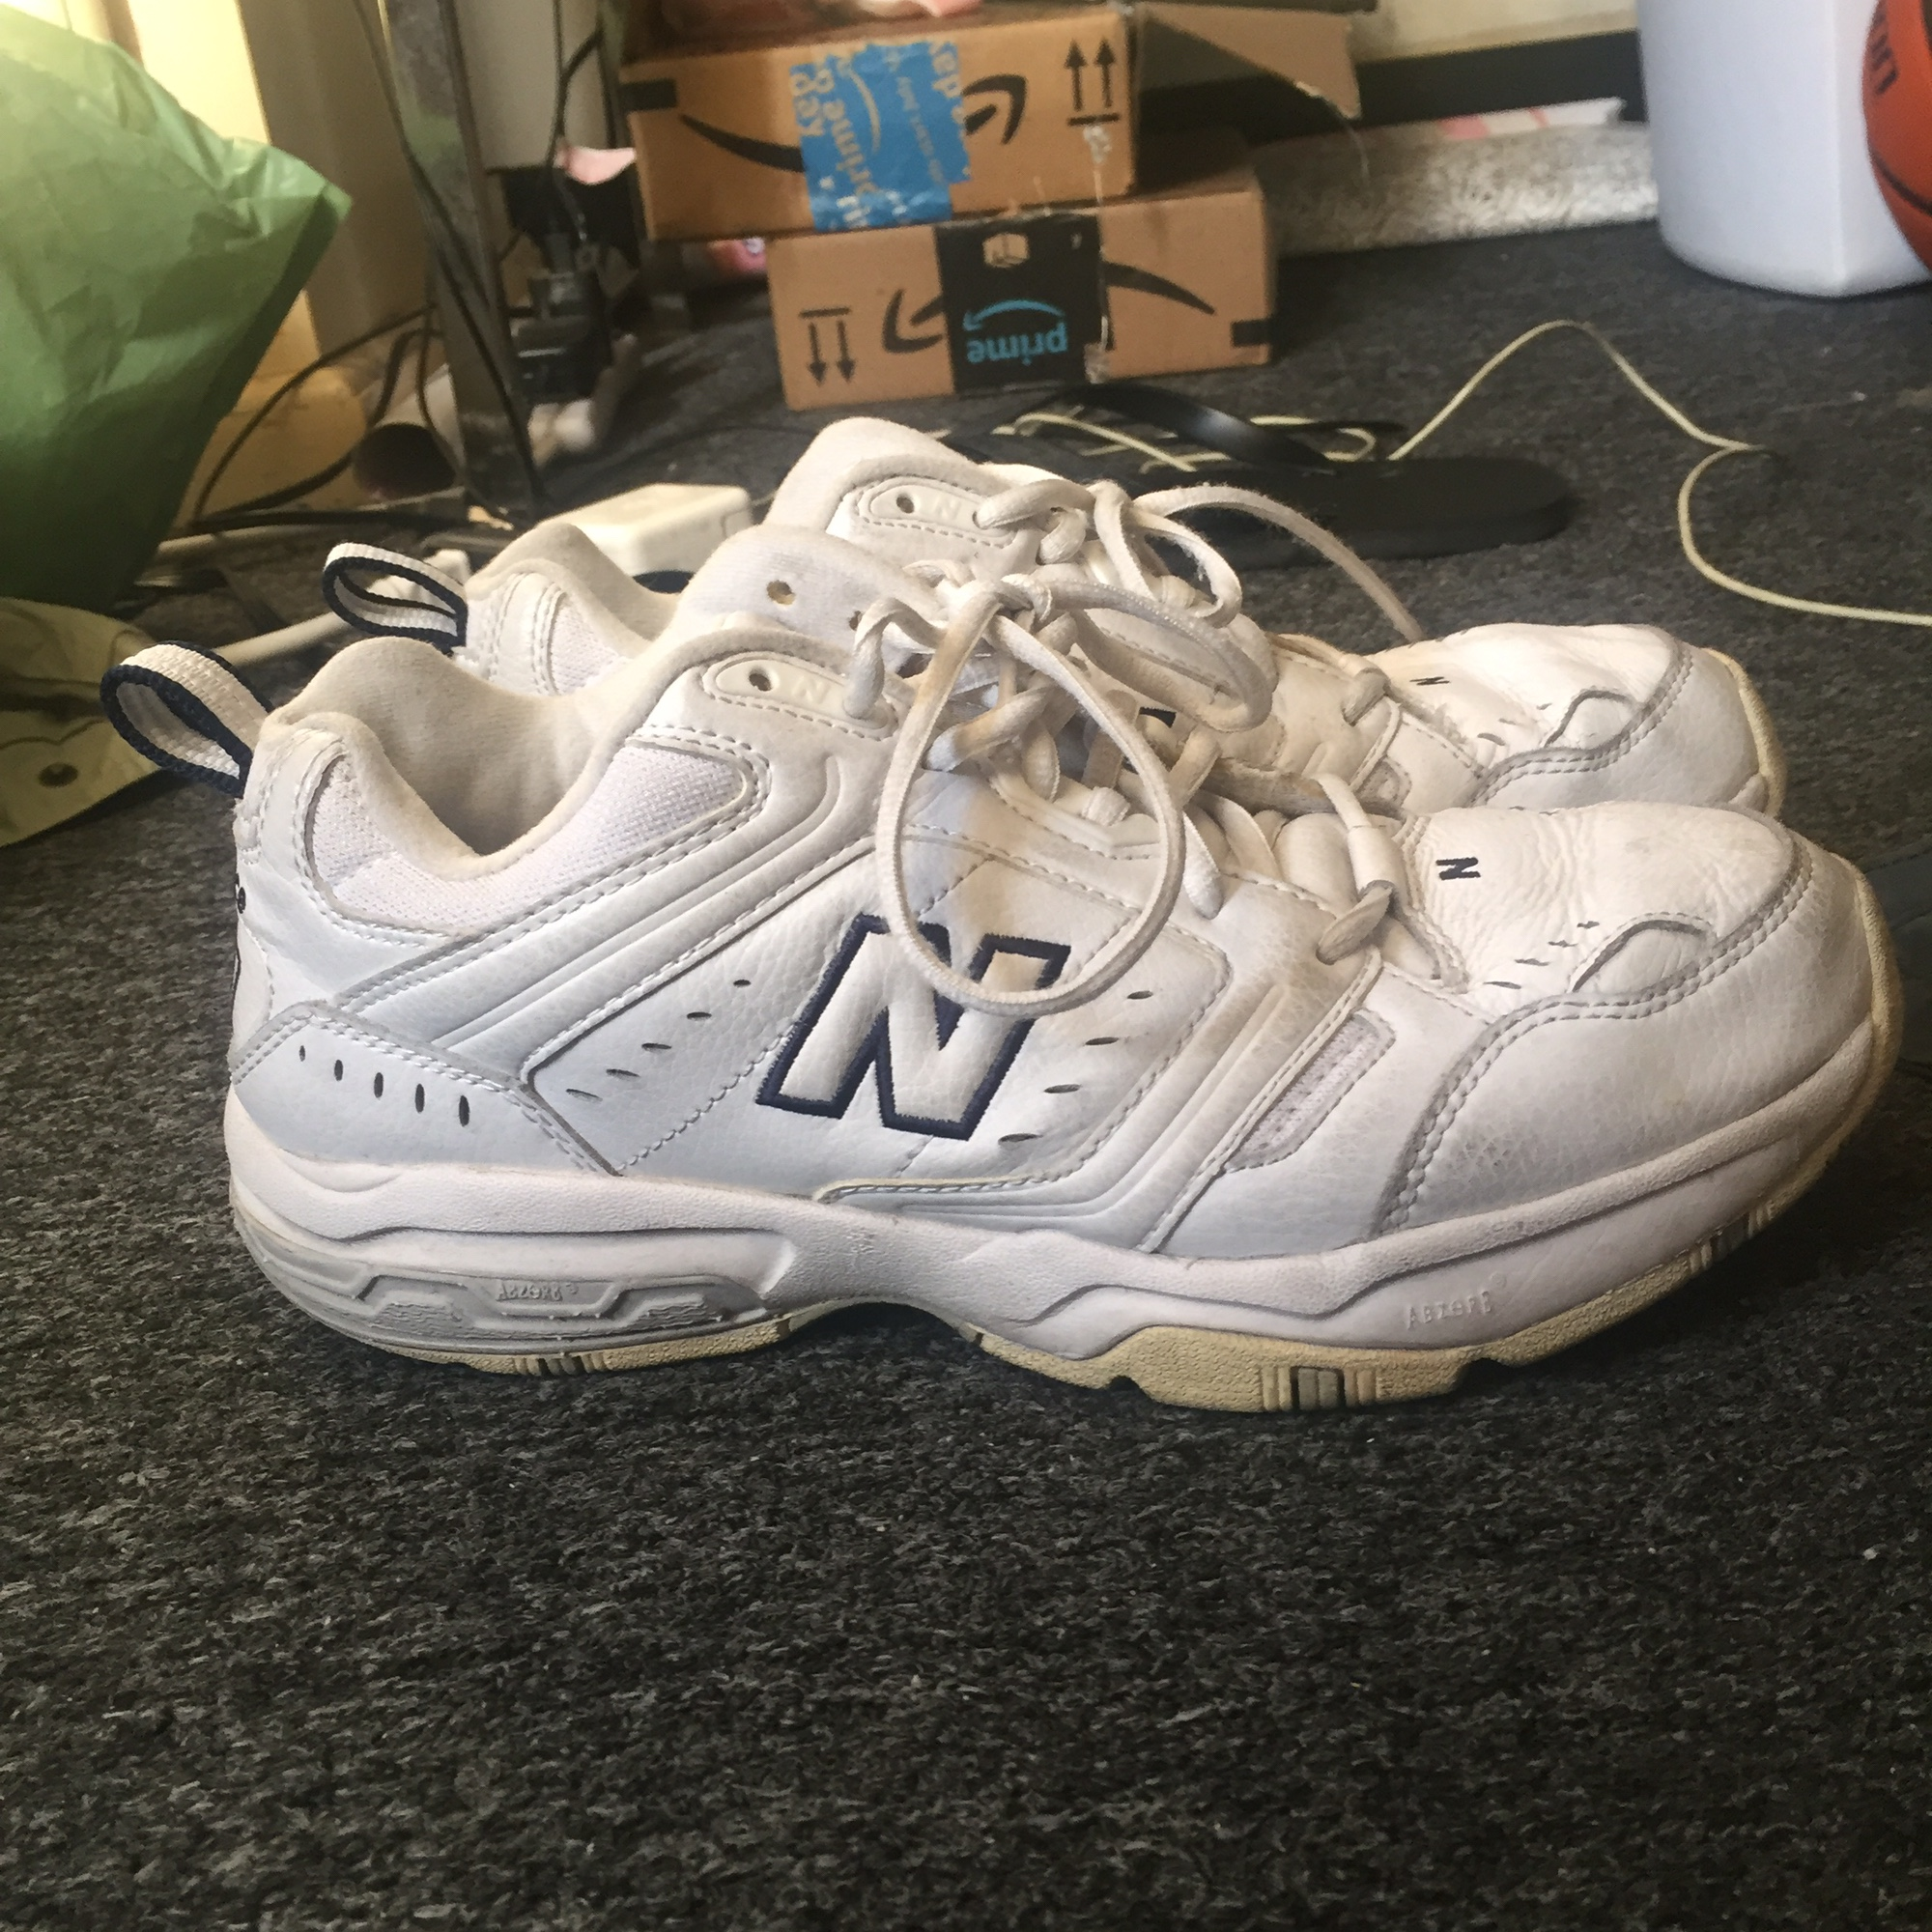 f8c0d6cbb56a Old new balance white but had dirt marks. Vintage?... - Depop